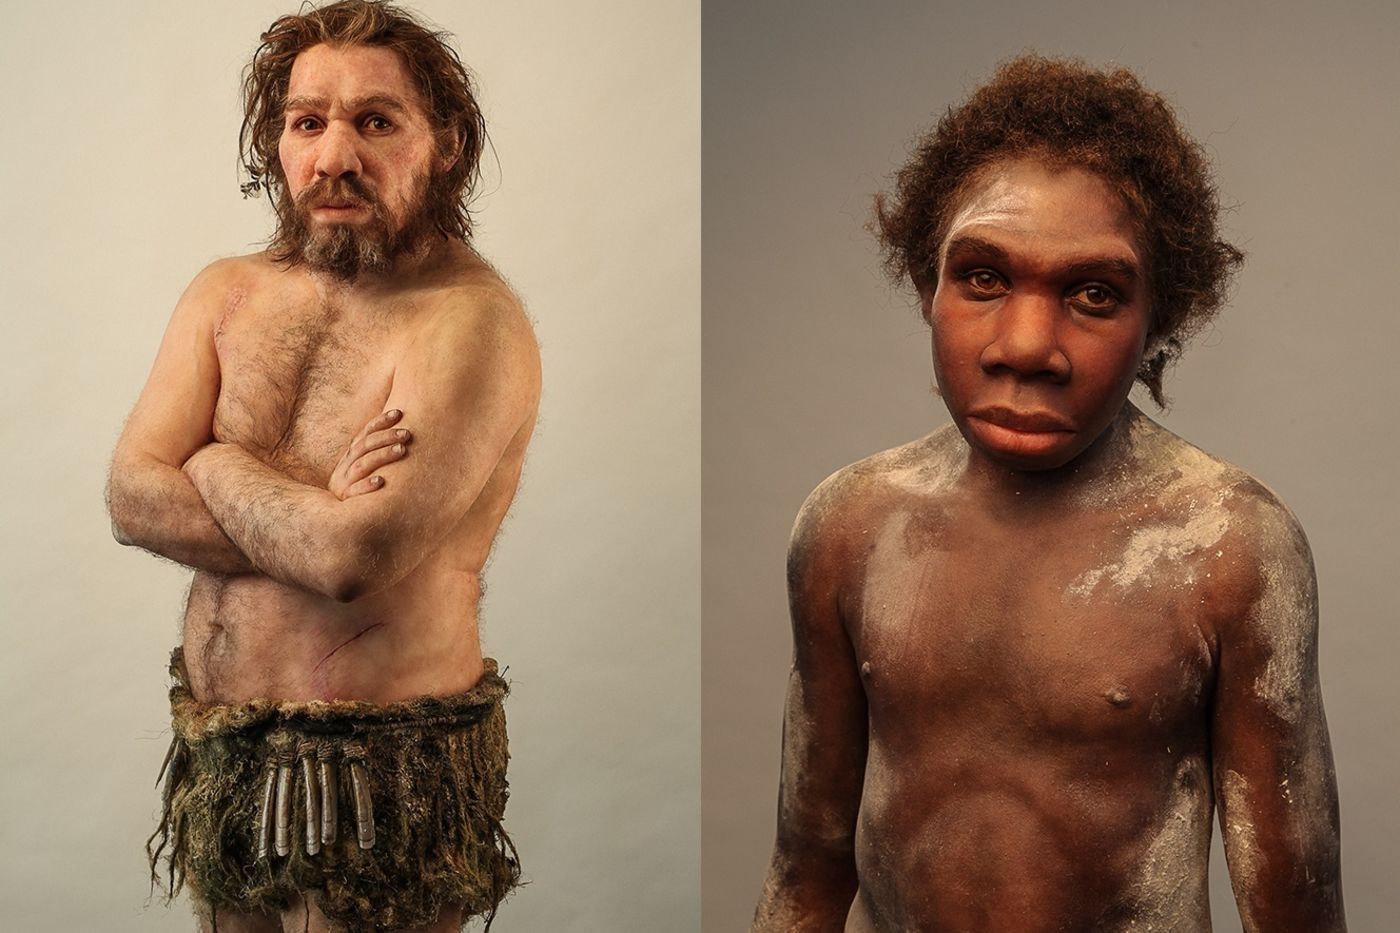 Two sculptures, created by French paleoartist Elisabeth Daynès, give a breathtakingly lifelike look at human relatives—Homo ergaster and Homo neanderthalensis.